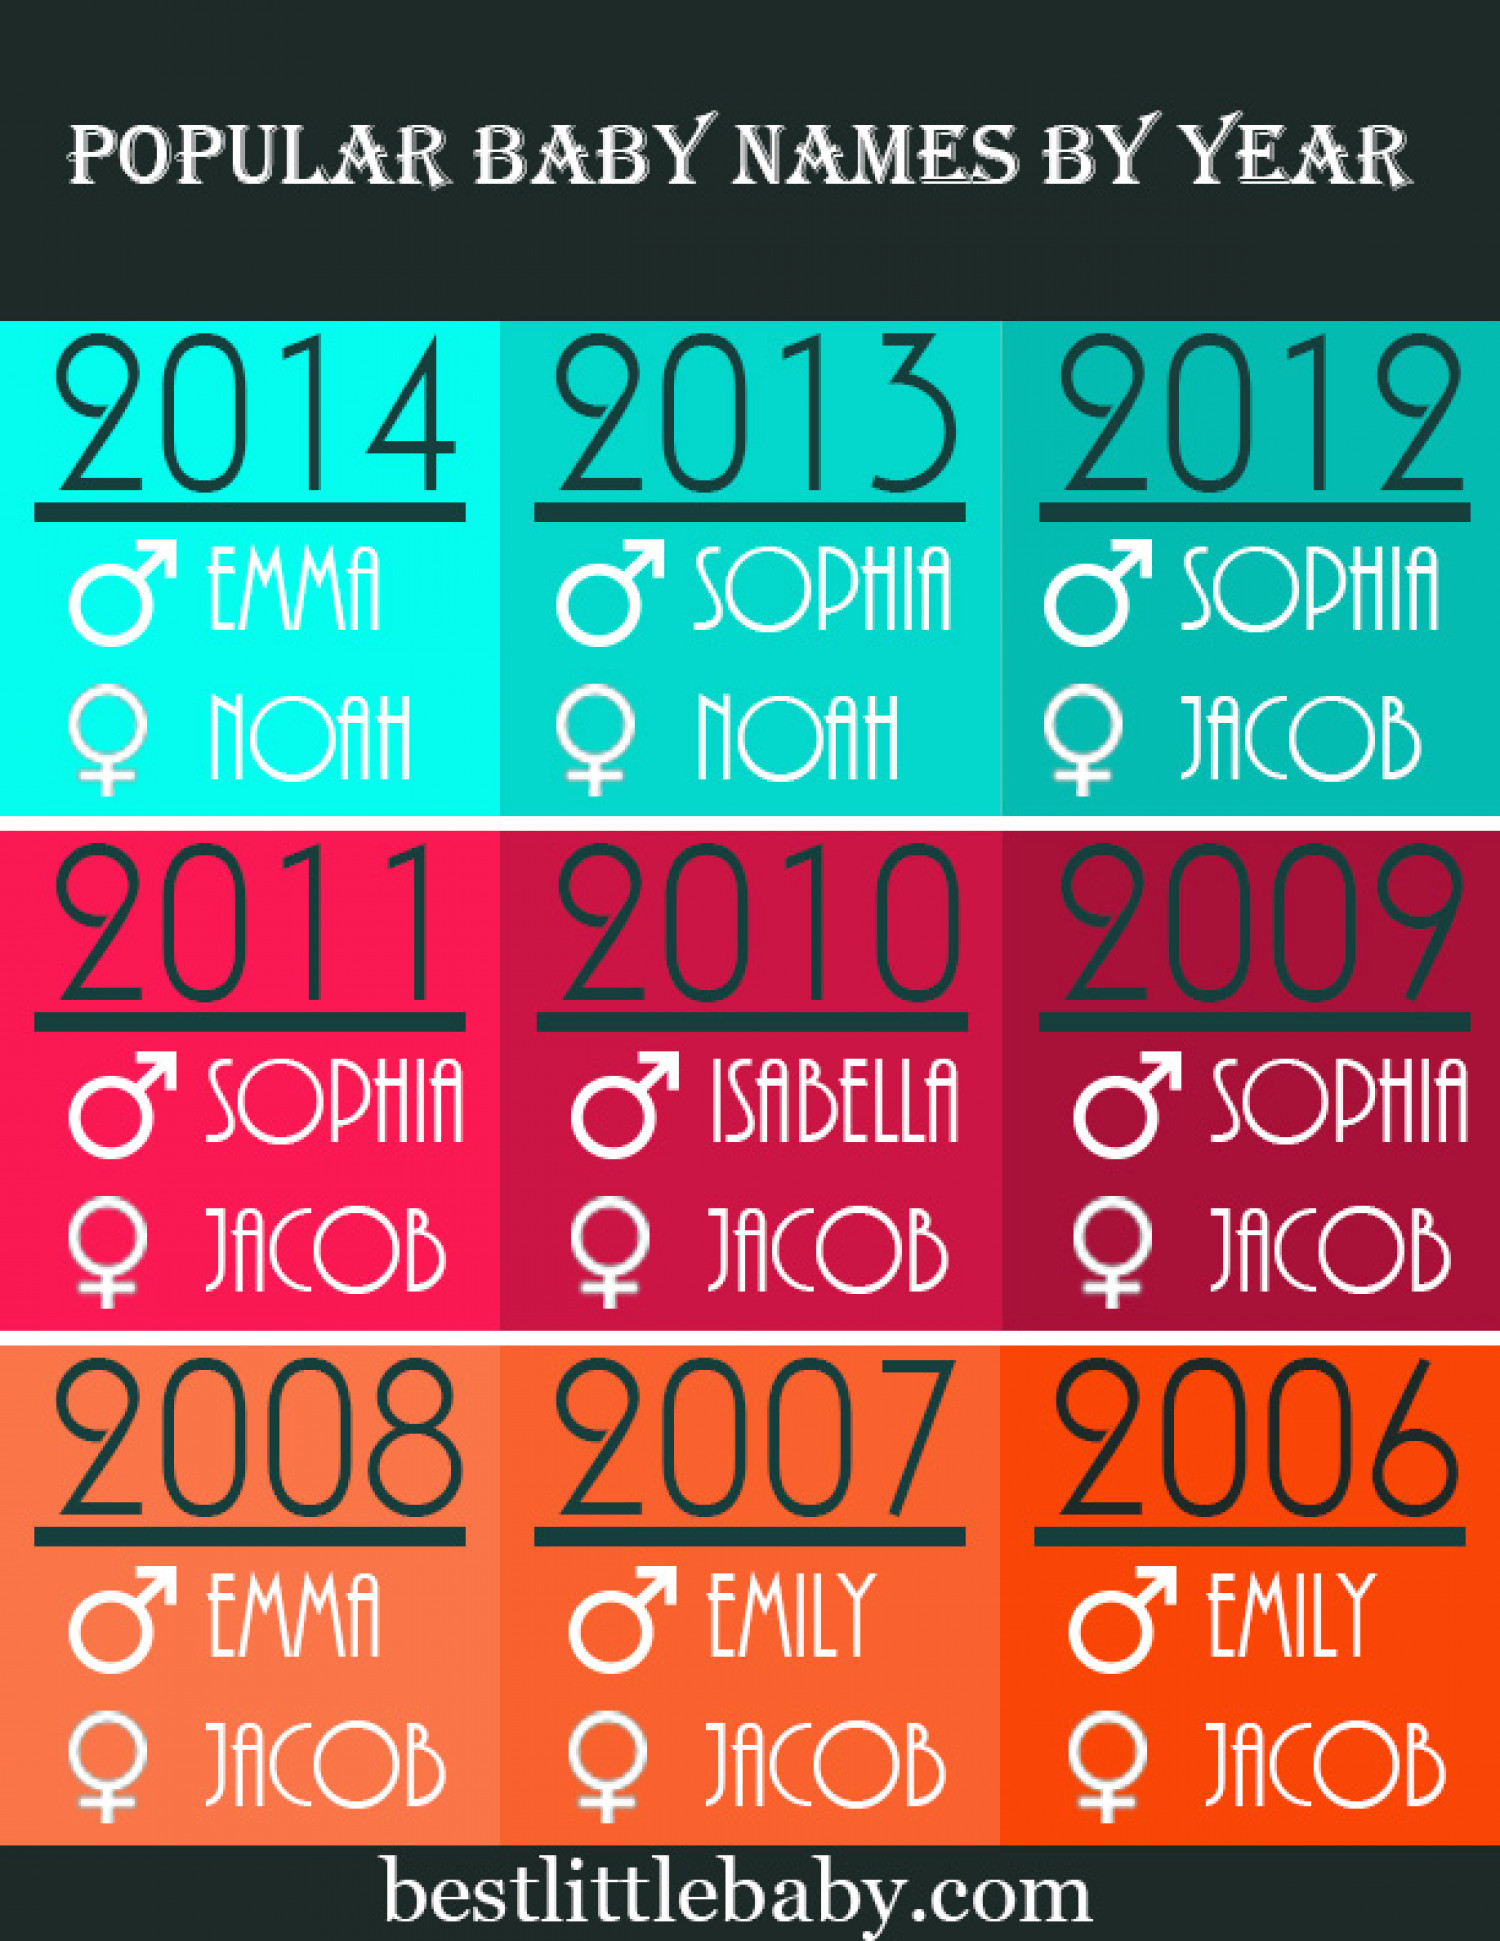 Top Baby Names 2006 - 2014 Infographic